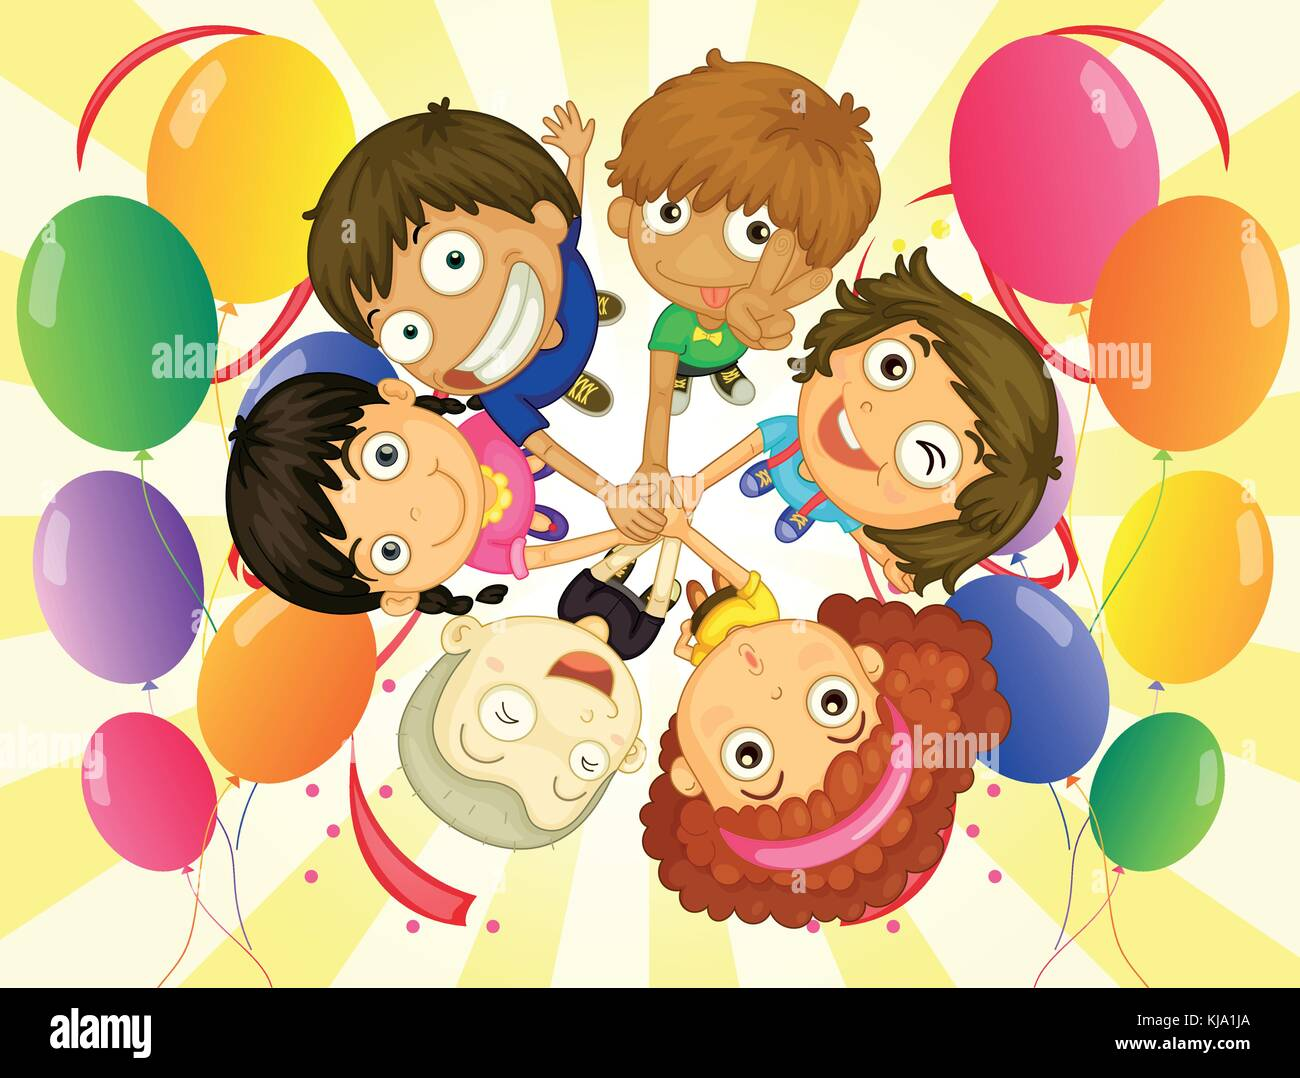 Illustration of the kids in a party on a white background - Stock Vector